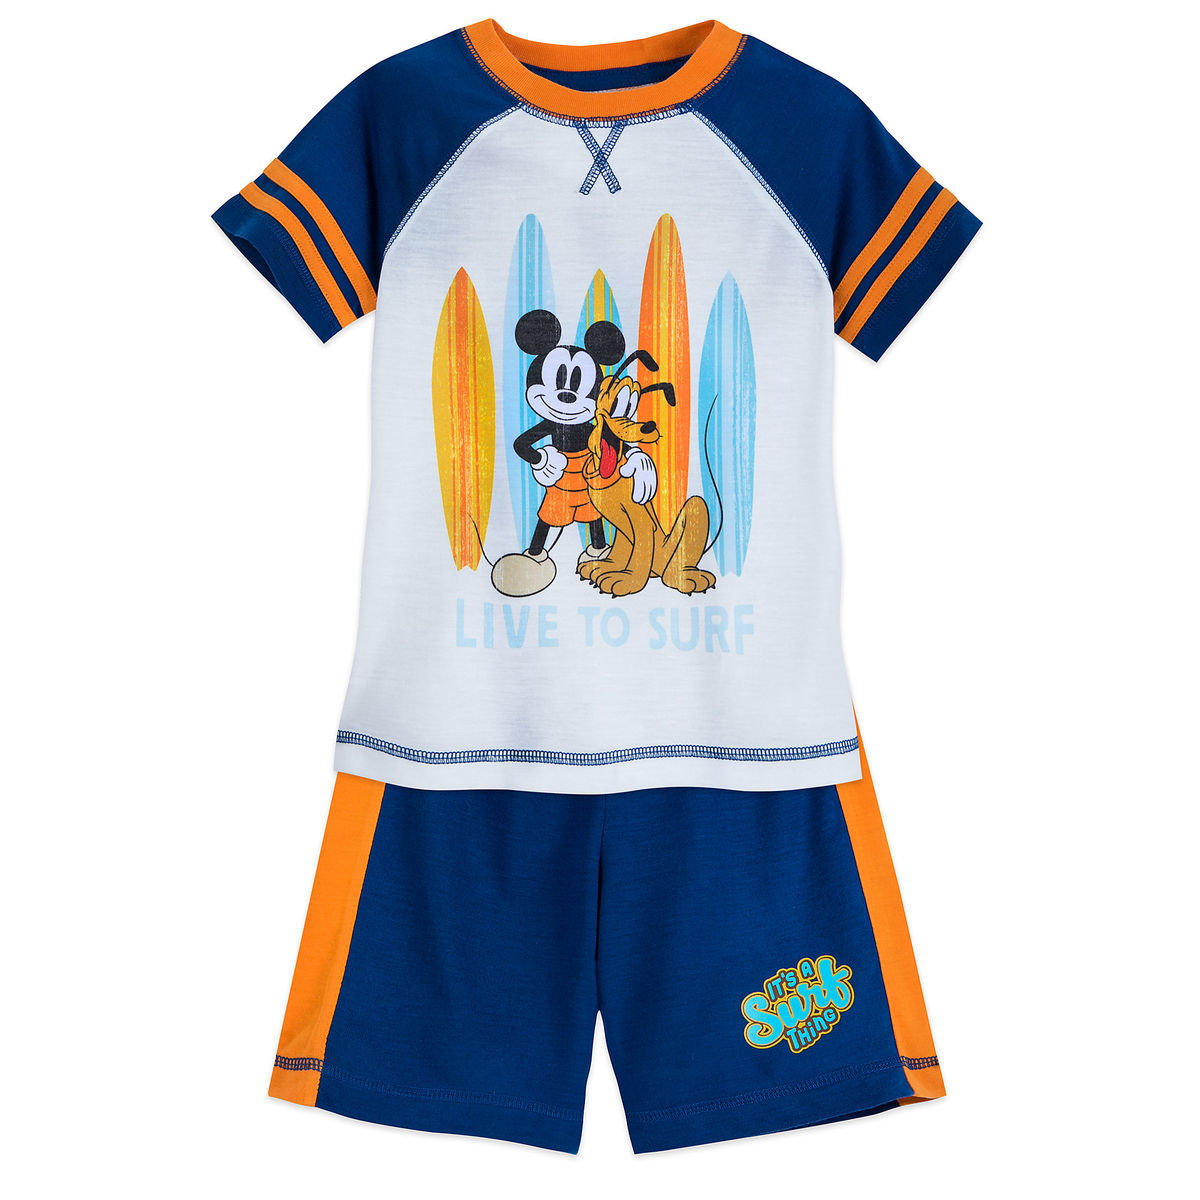 49455d06a Mickey Mouse and Pluto   Surf   Shorts Sleep Set for Boys